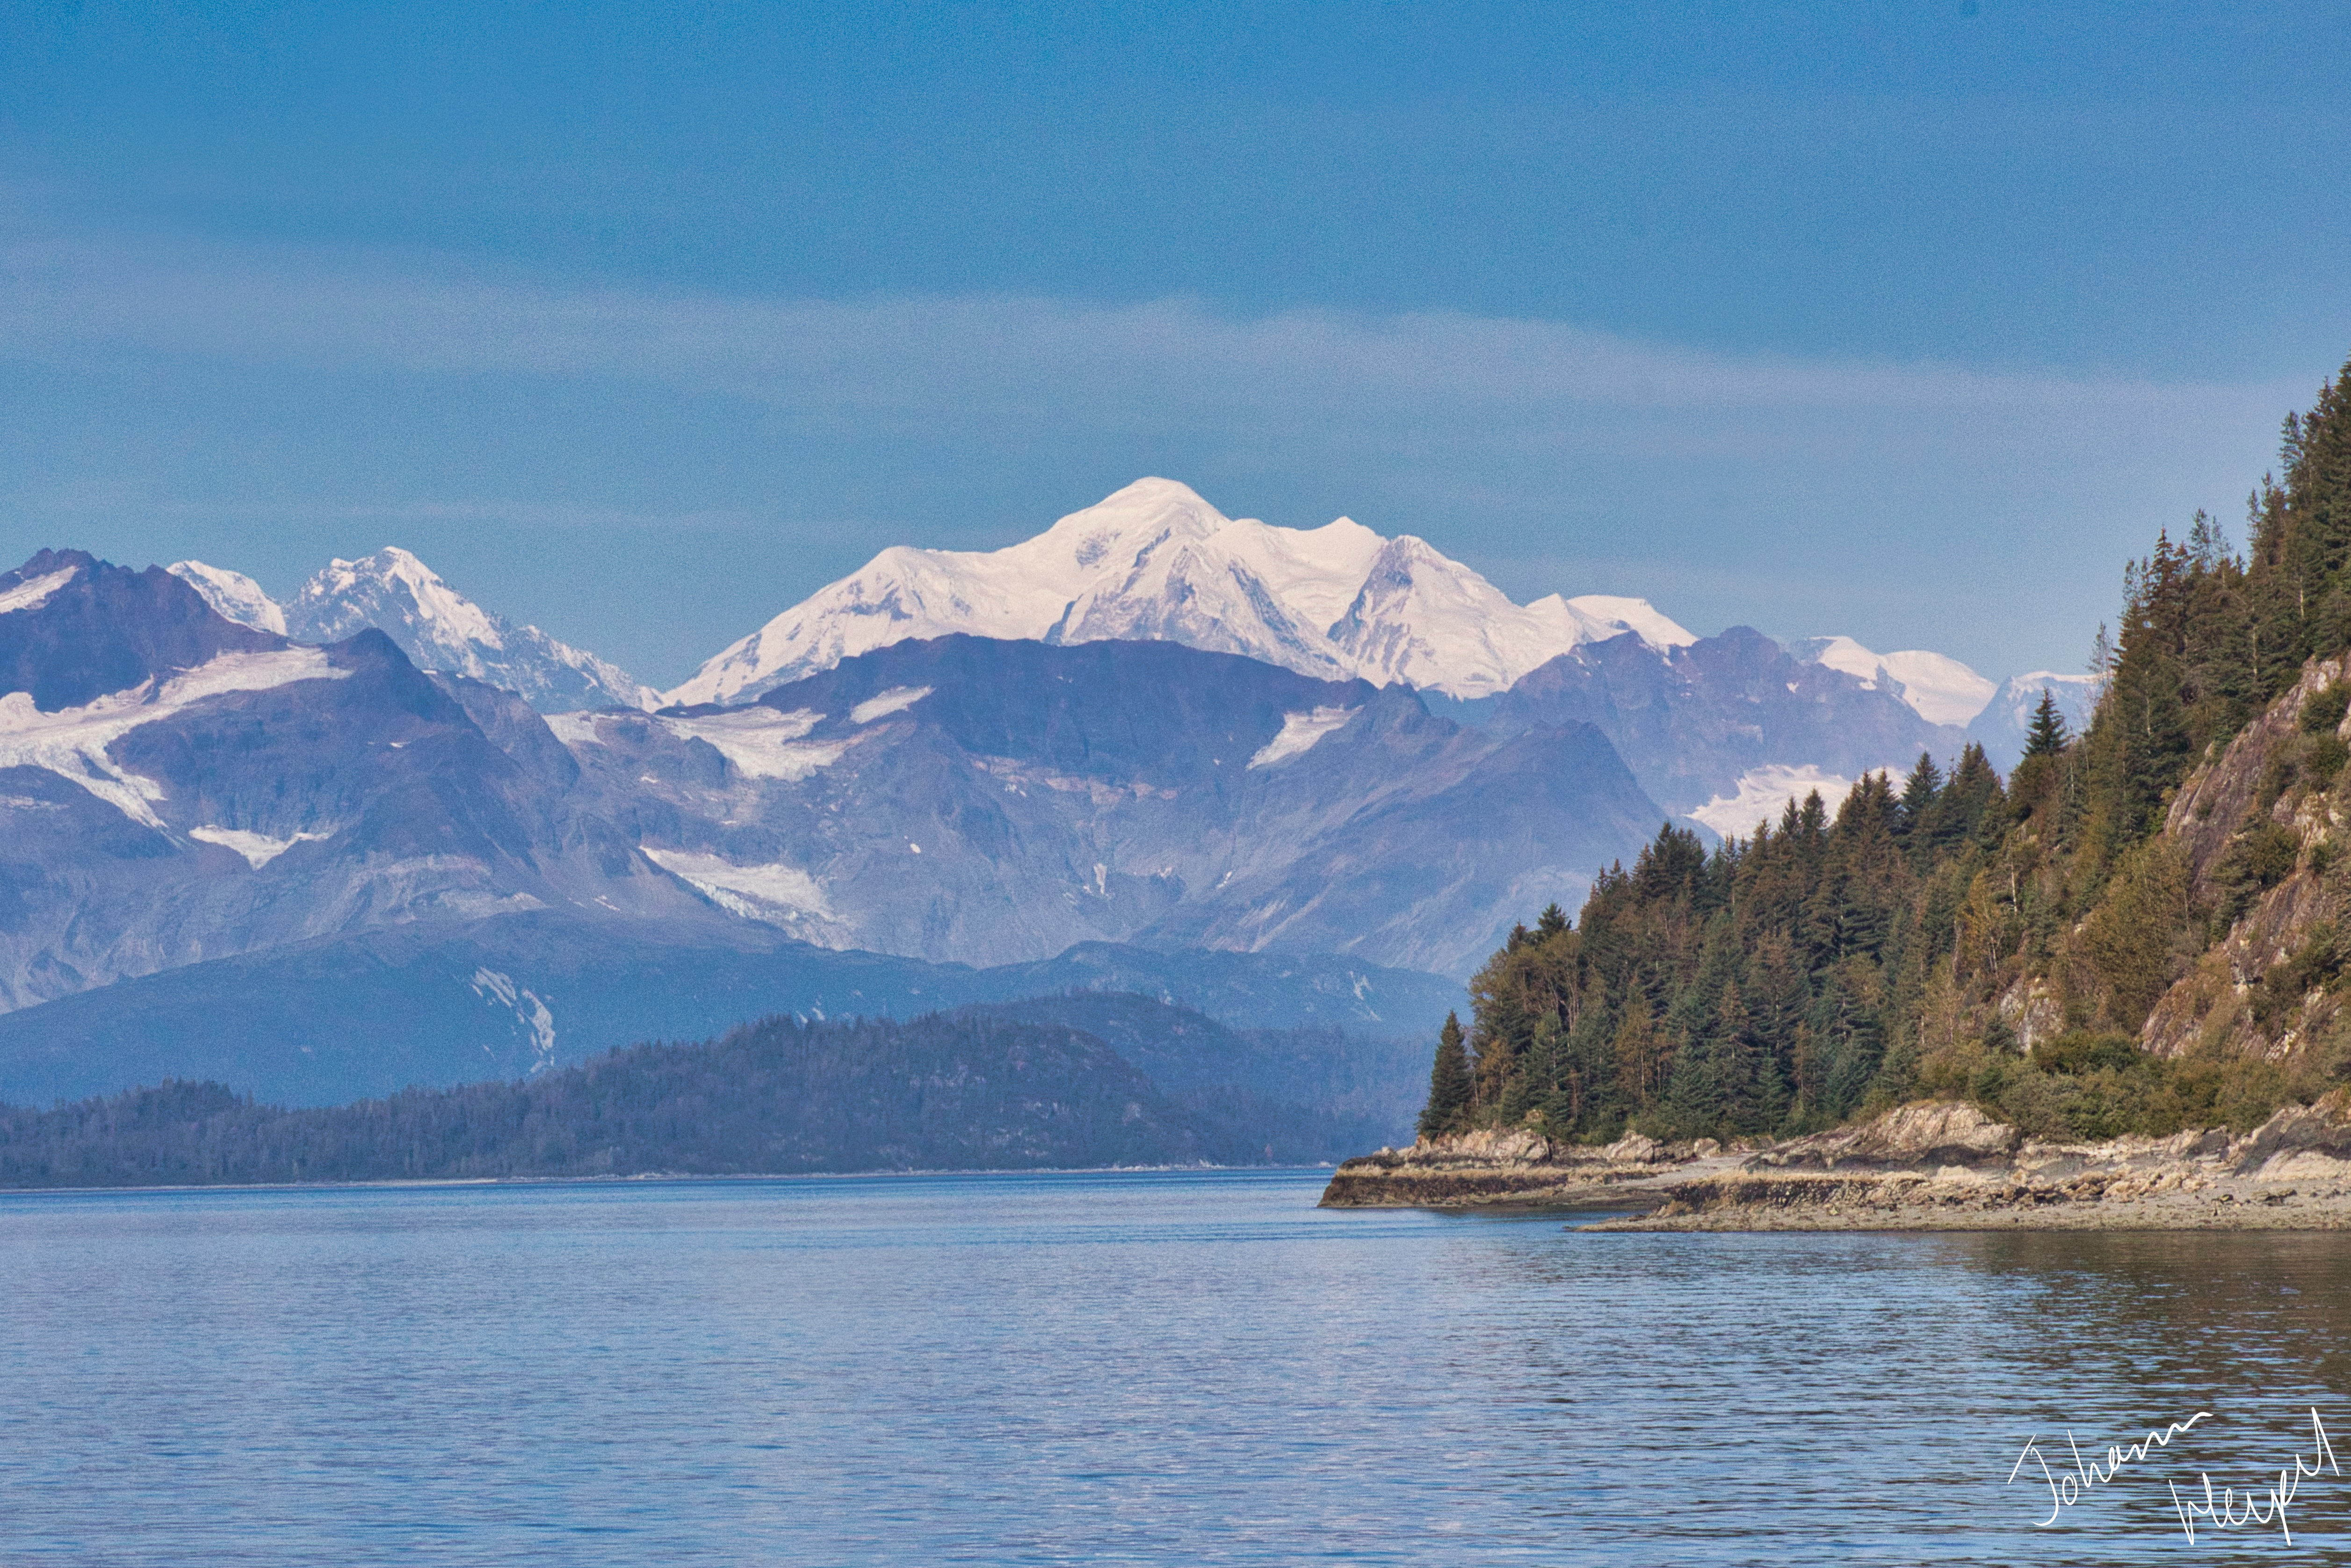 Photo shows snow-capped mountains towering over a pristine bay, with a rugged, evergreen forest on its shores